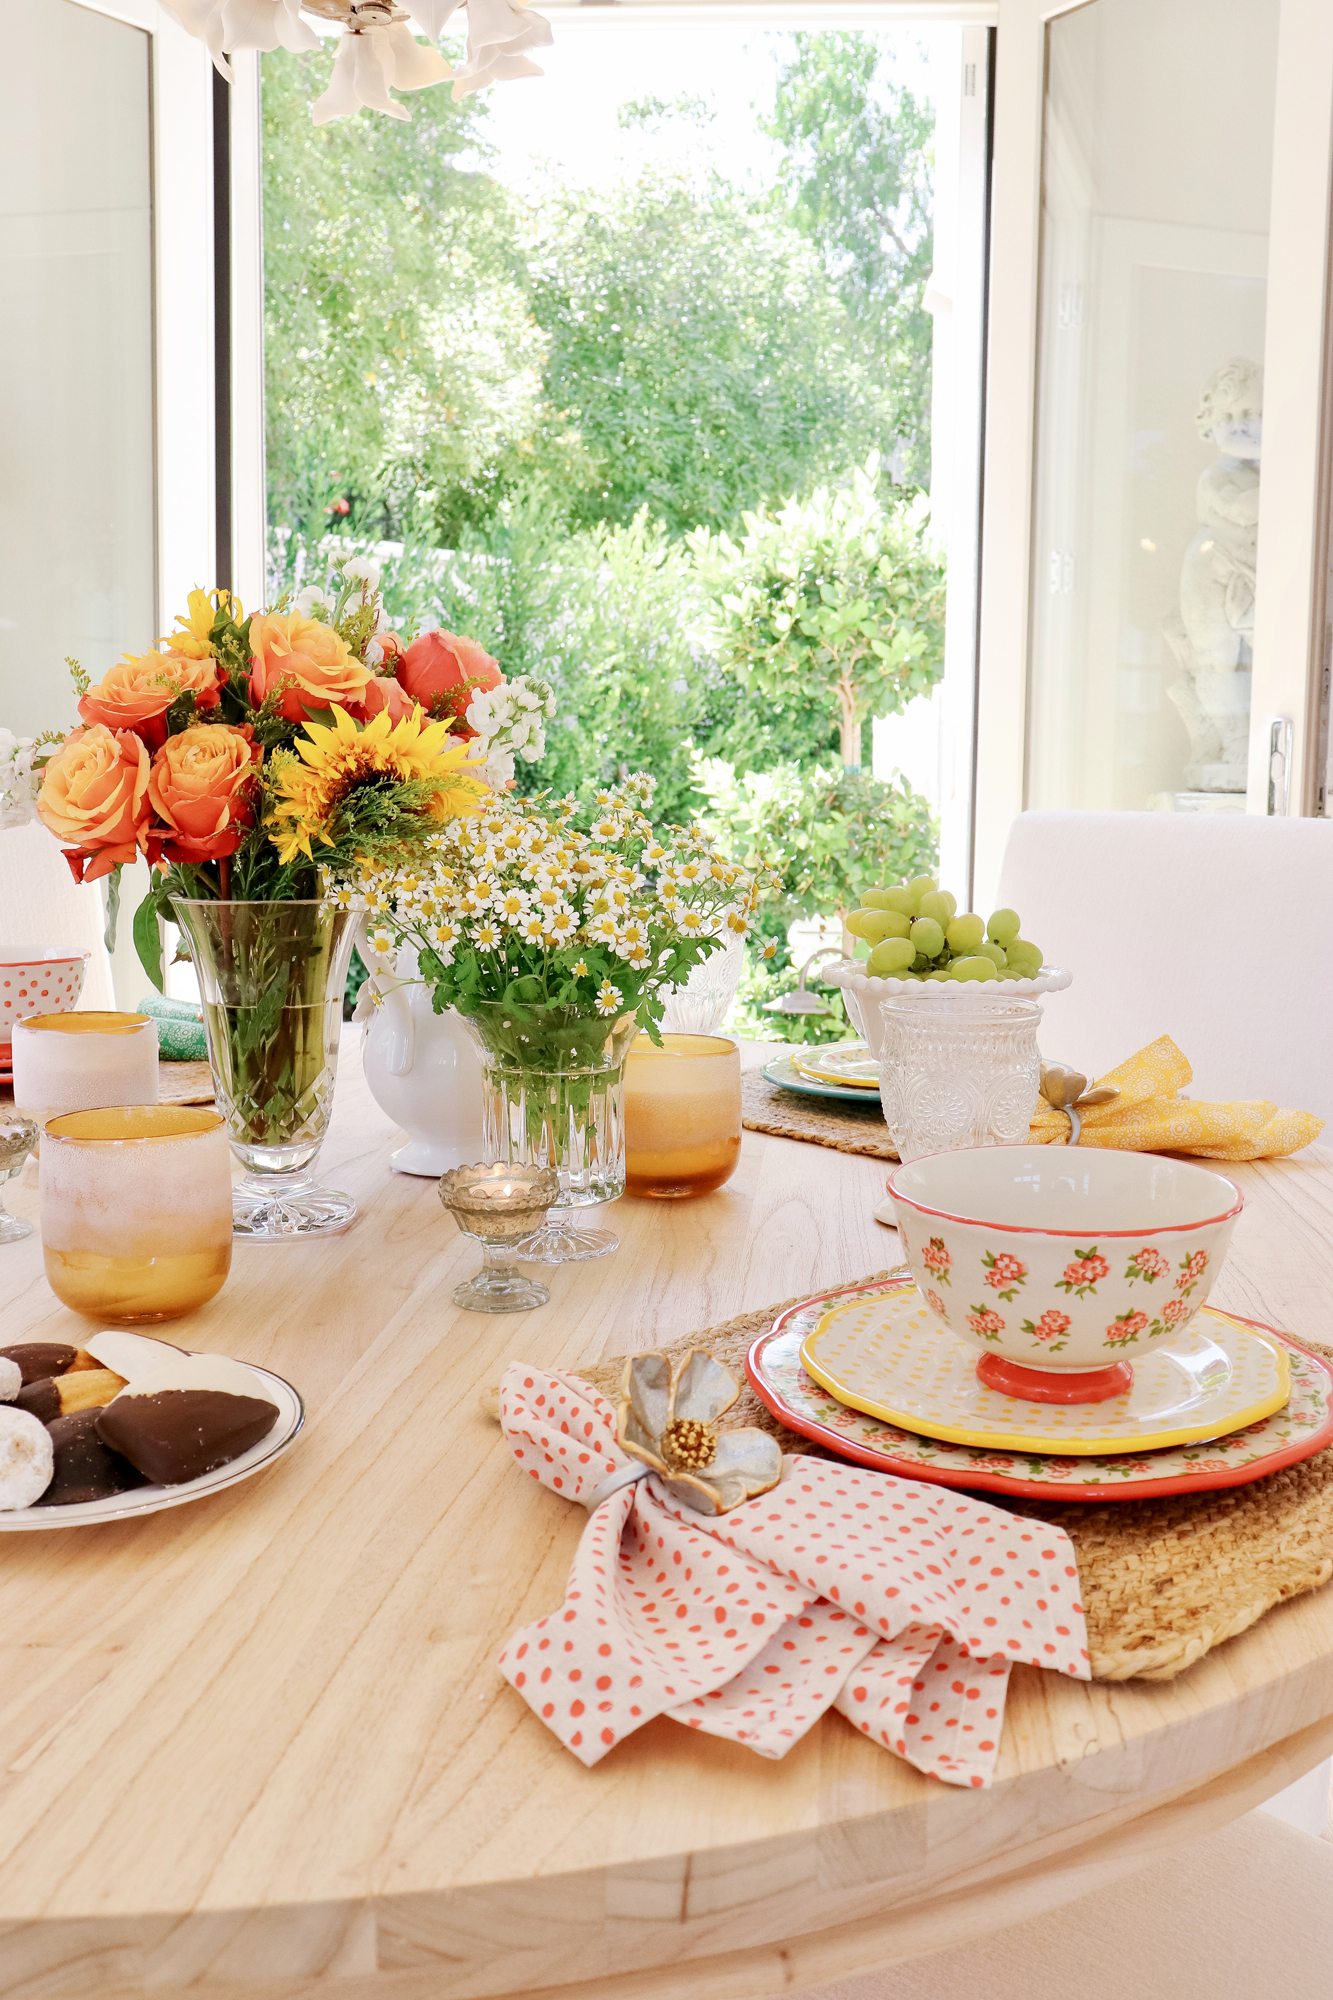 Vintage Inspired Dining Ideas - Adorable and Affordable Dinnerware options.. how to host your friends and make it a throwback event!